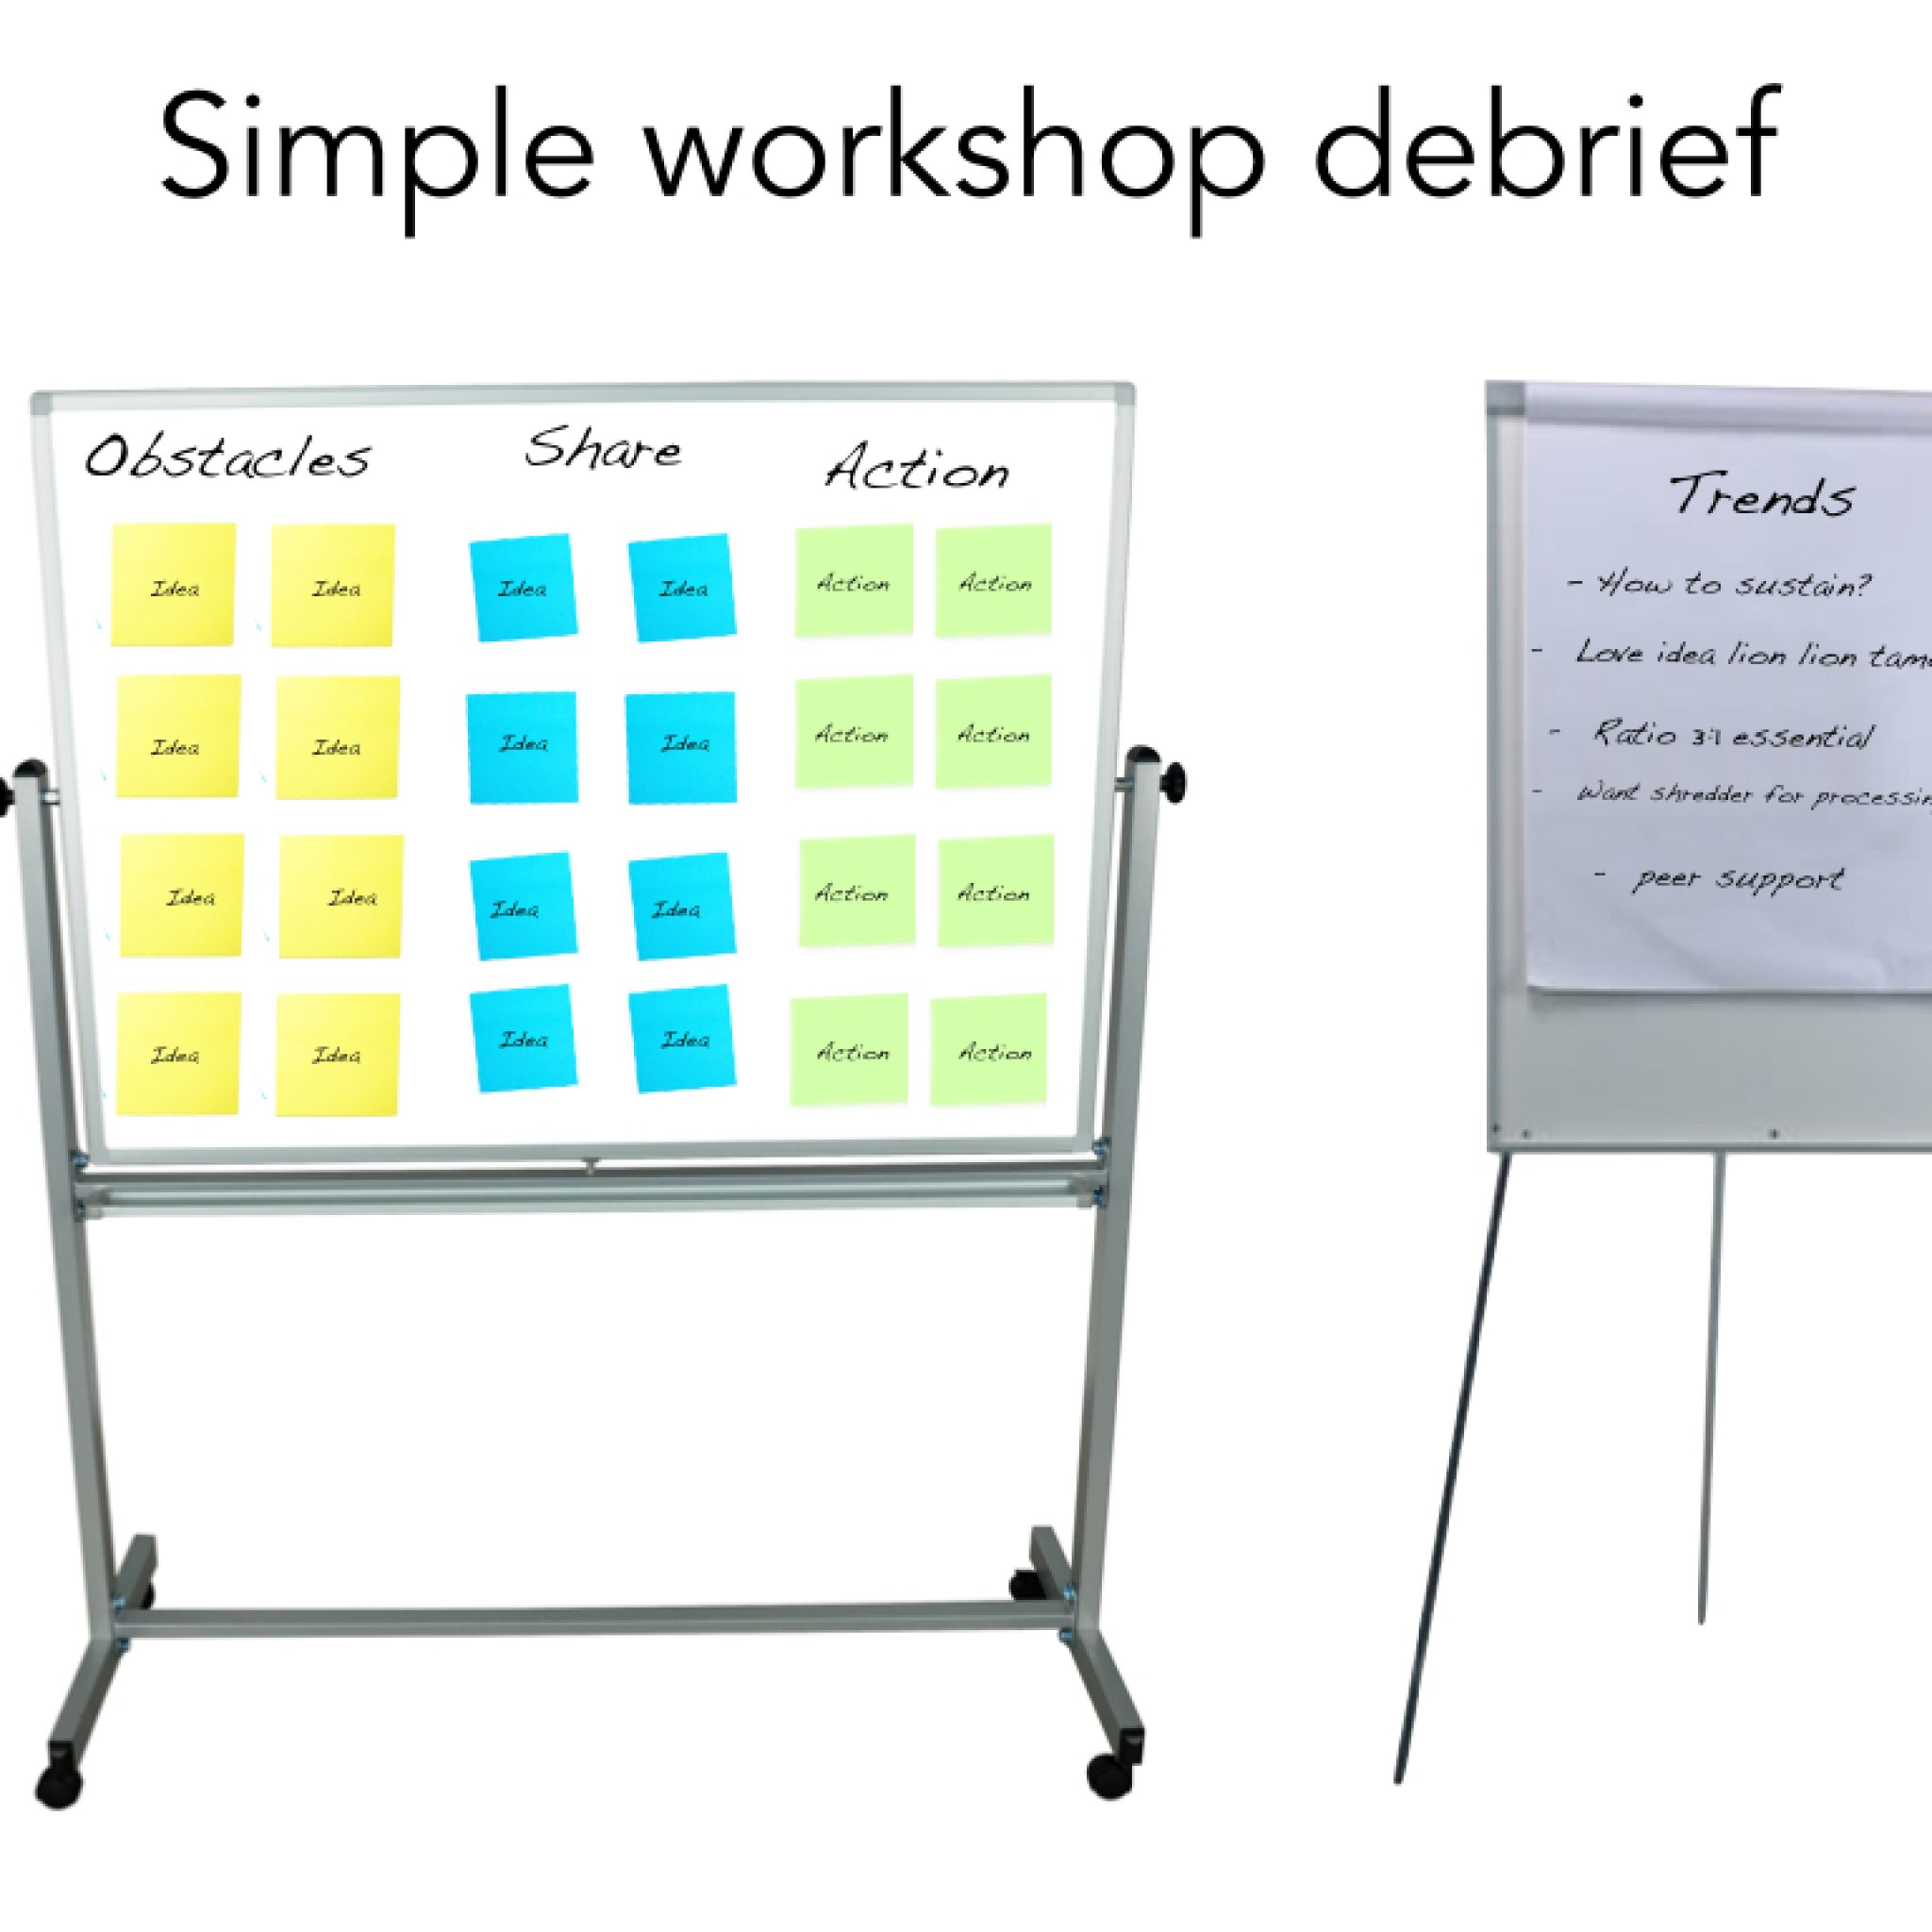 how to run a simple workshop debrief